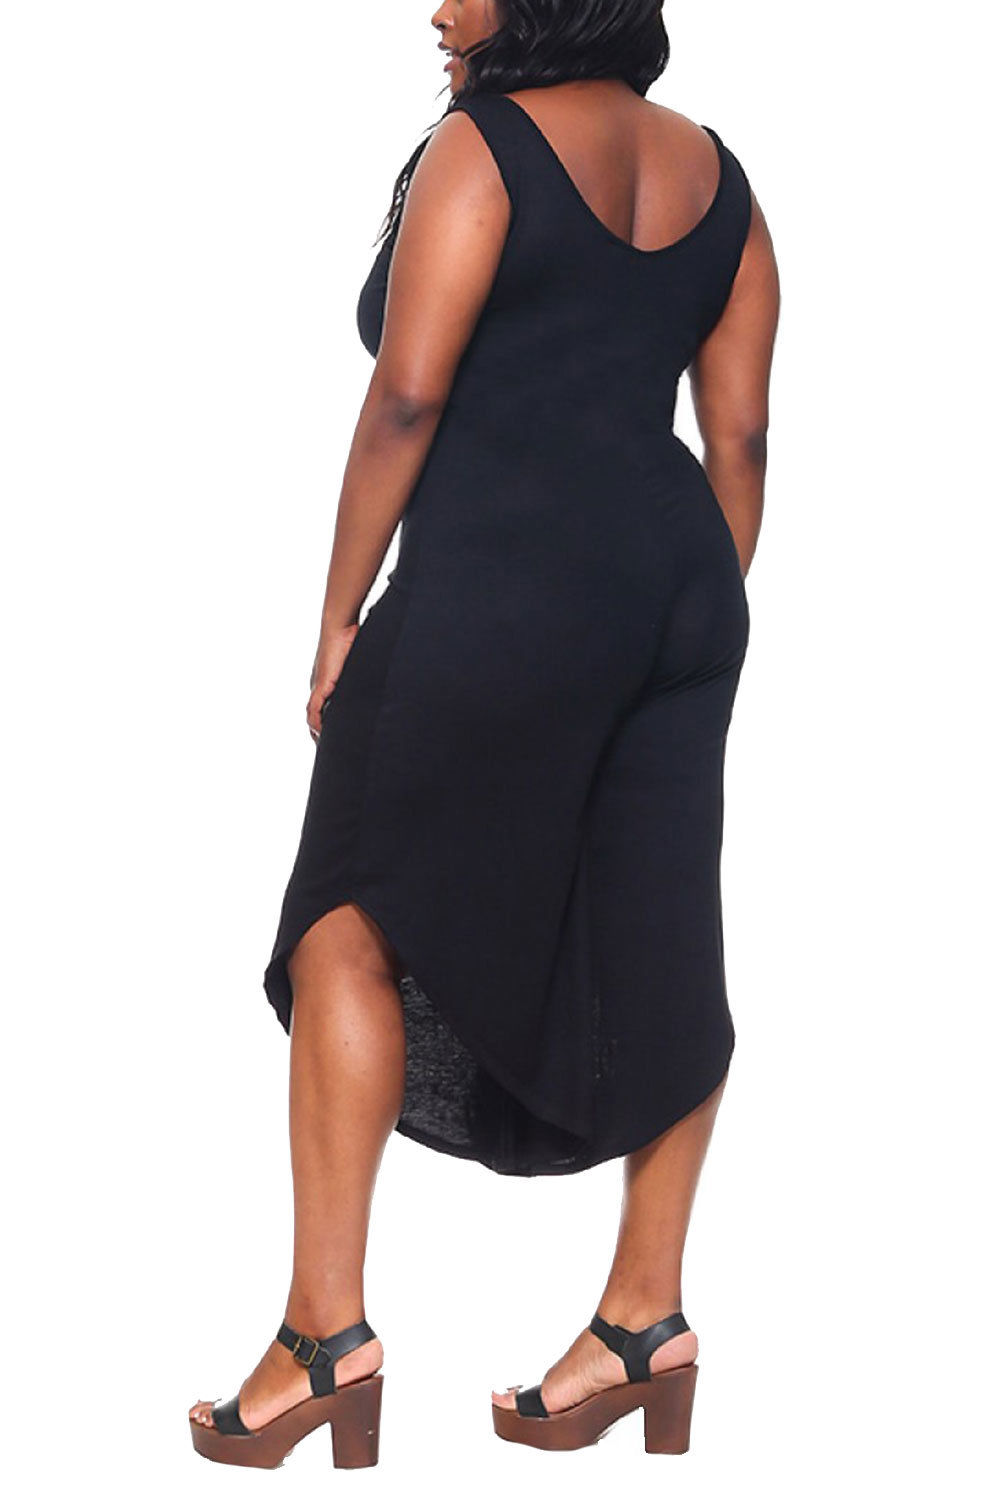 692229db620 Genx - Womens Plus Size Solid Sleeveless Drapped Capri Jumpsuit YD-1220-XL- Black - Walmart.com